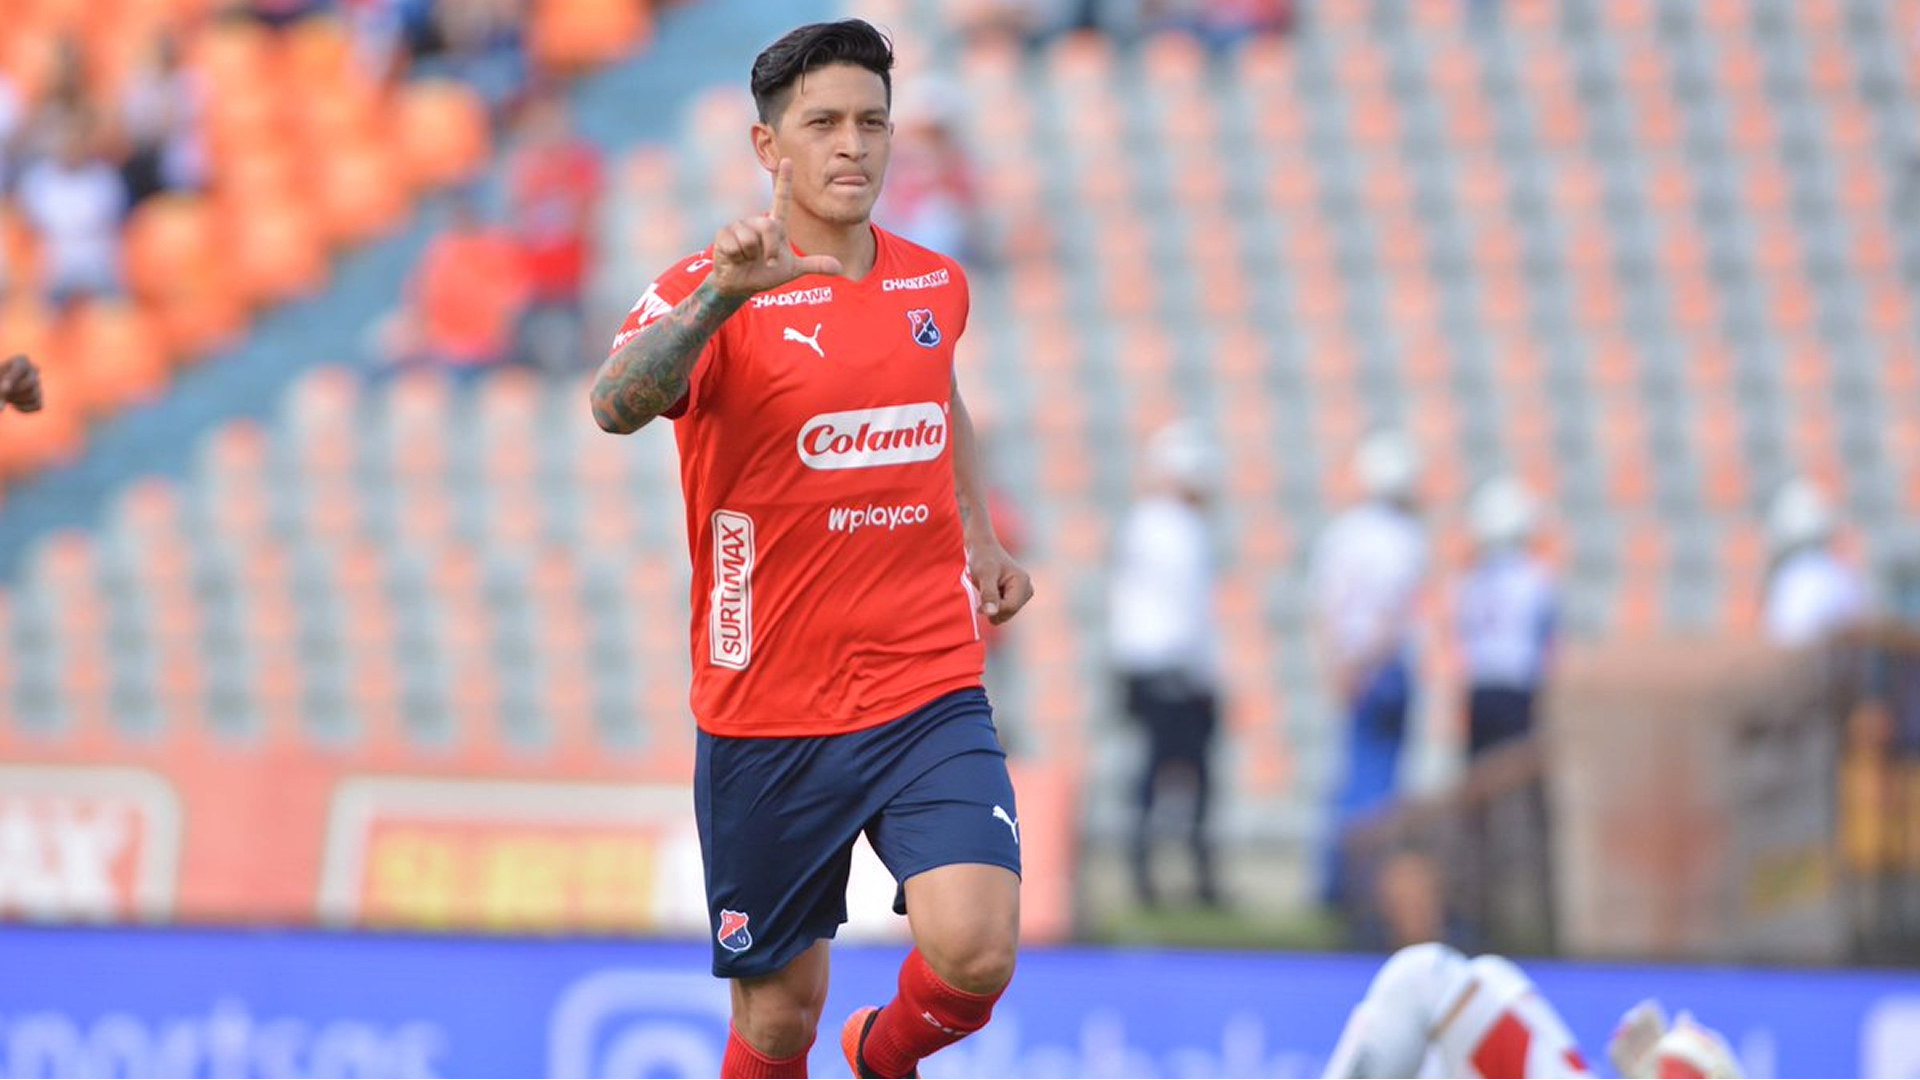 German Cano Independiente Medellin Liga Aguila 2018